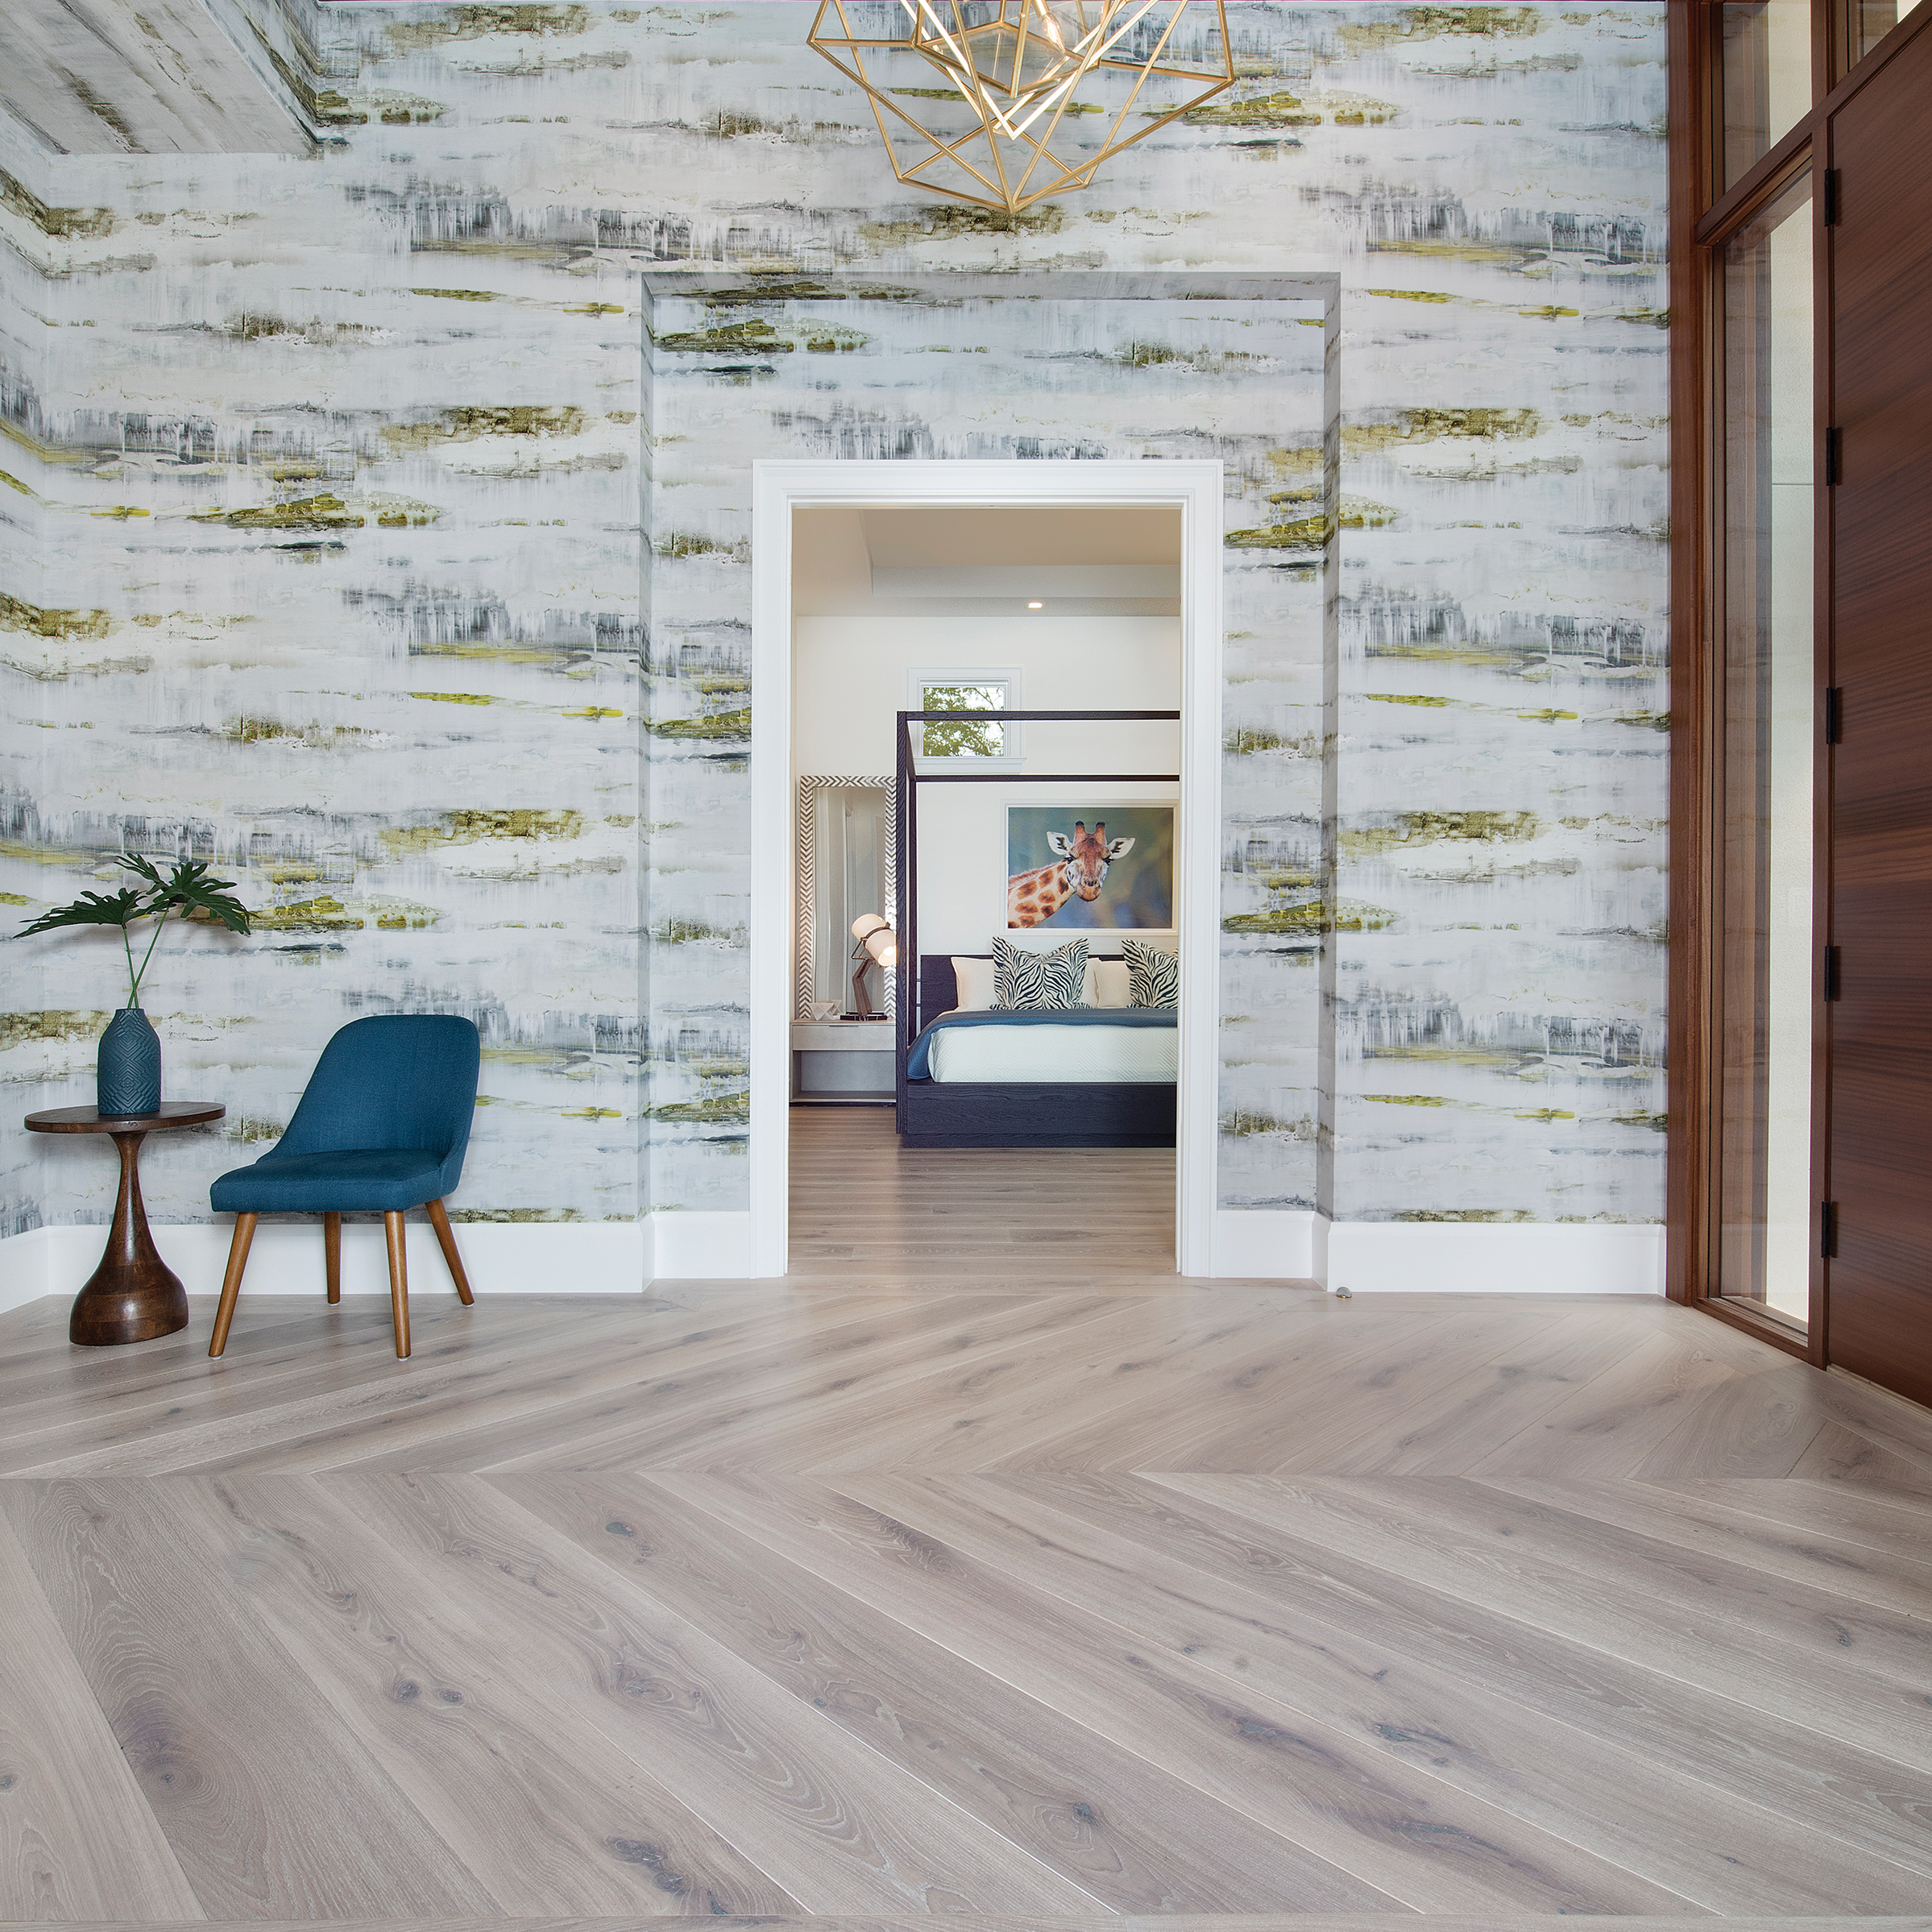 The foyer is a great place to use a chevron wood floor. It can be used with a border, as shown here, to create a transition into your home and to set the tone for the rooms beyond.